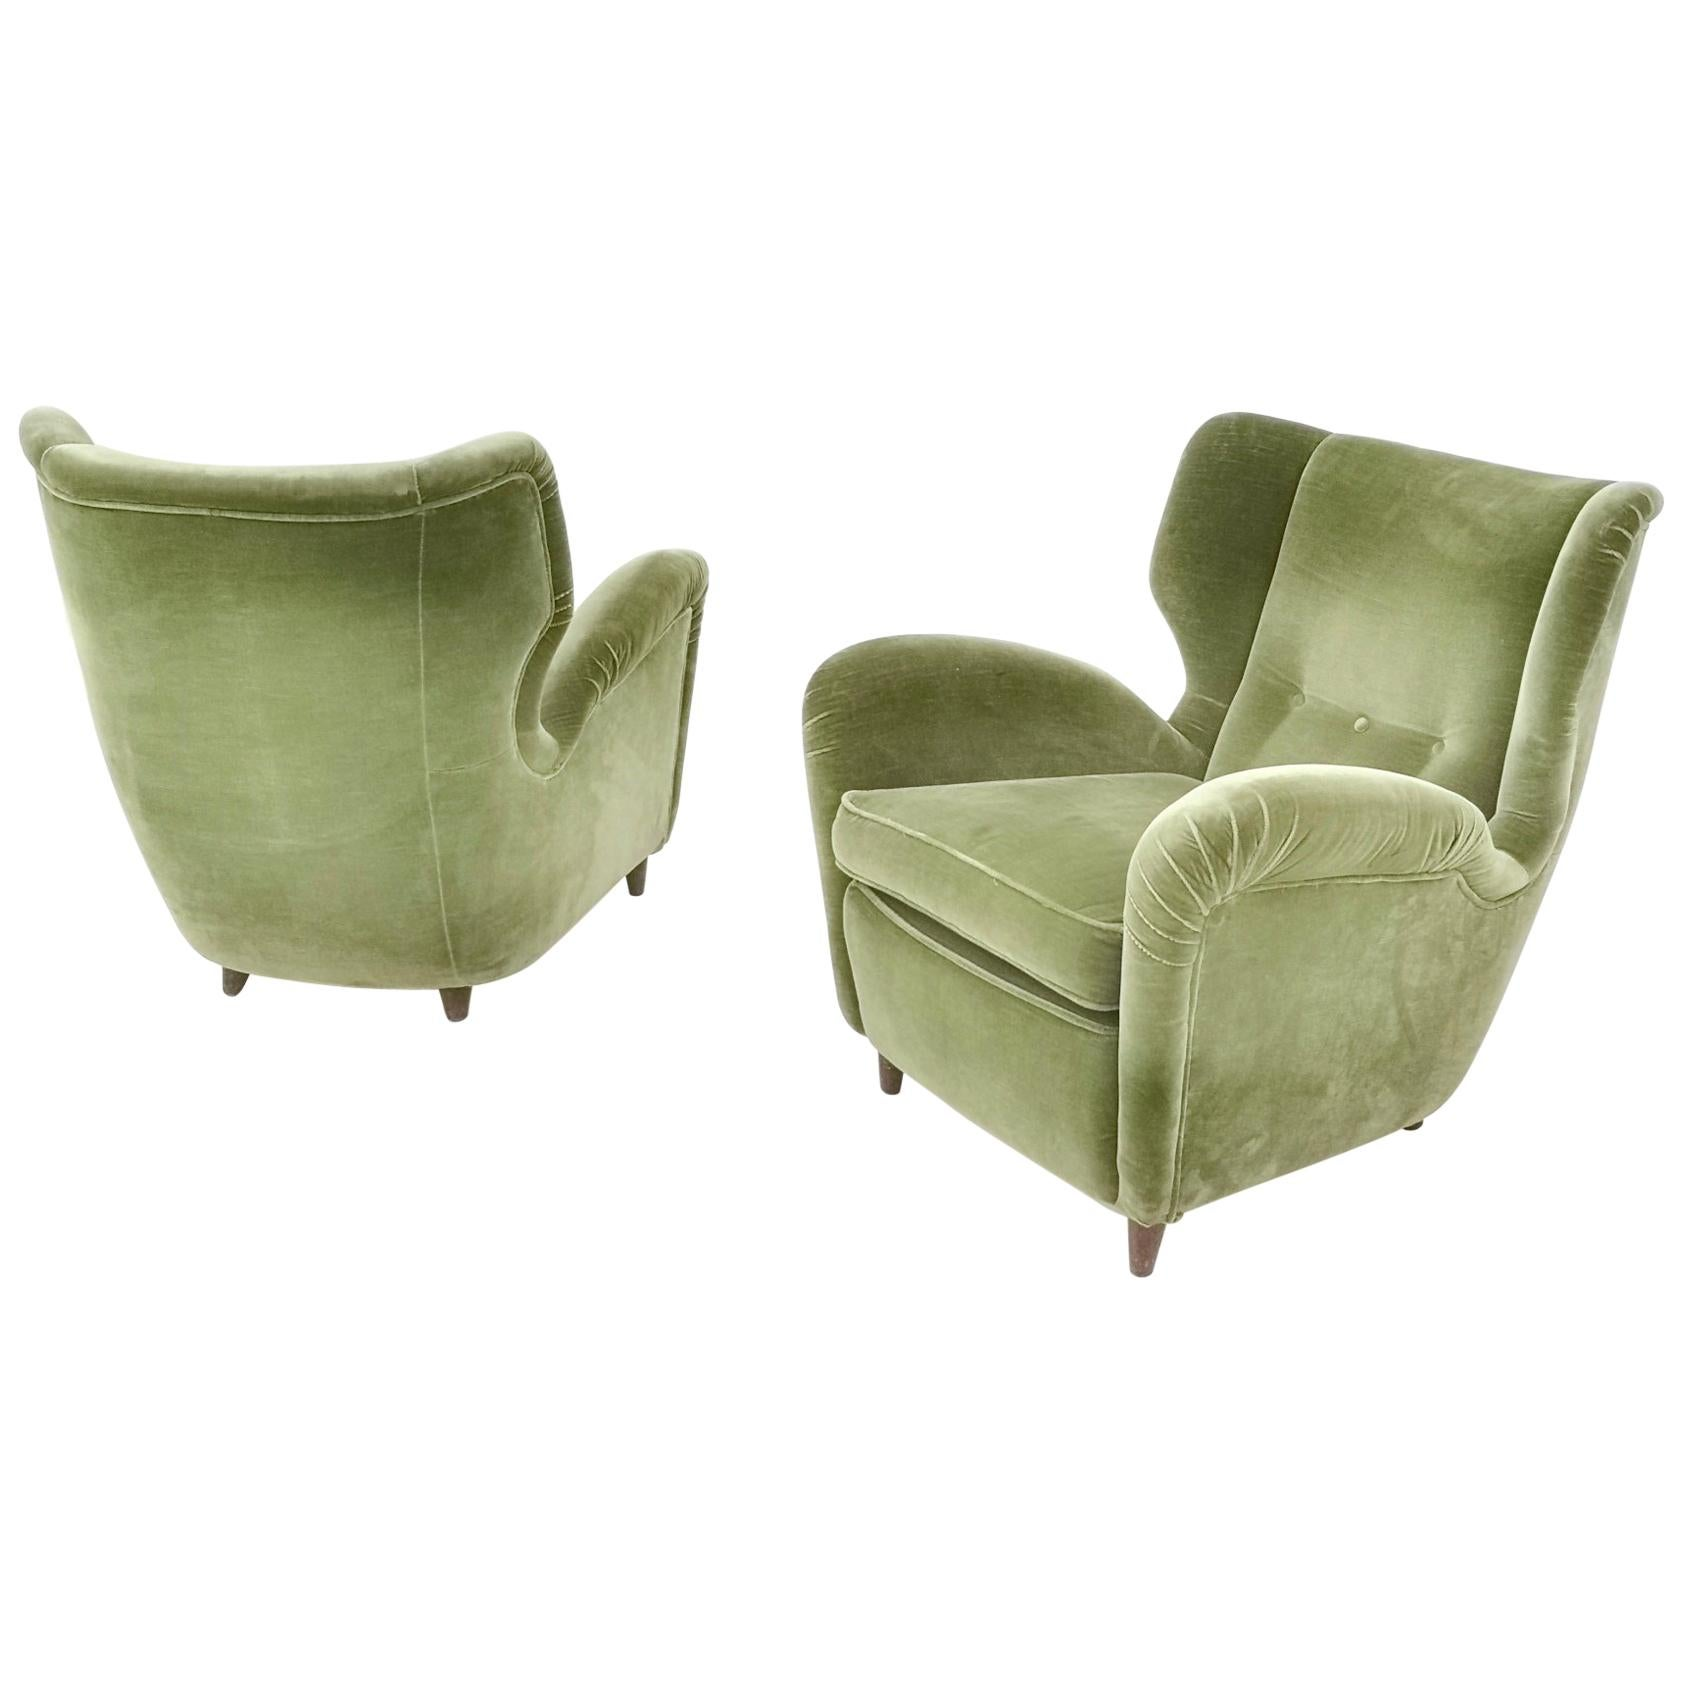 Bon Pair Of High Quality Olive Green Velvet Armchairs, Italy, 1950s For Sale